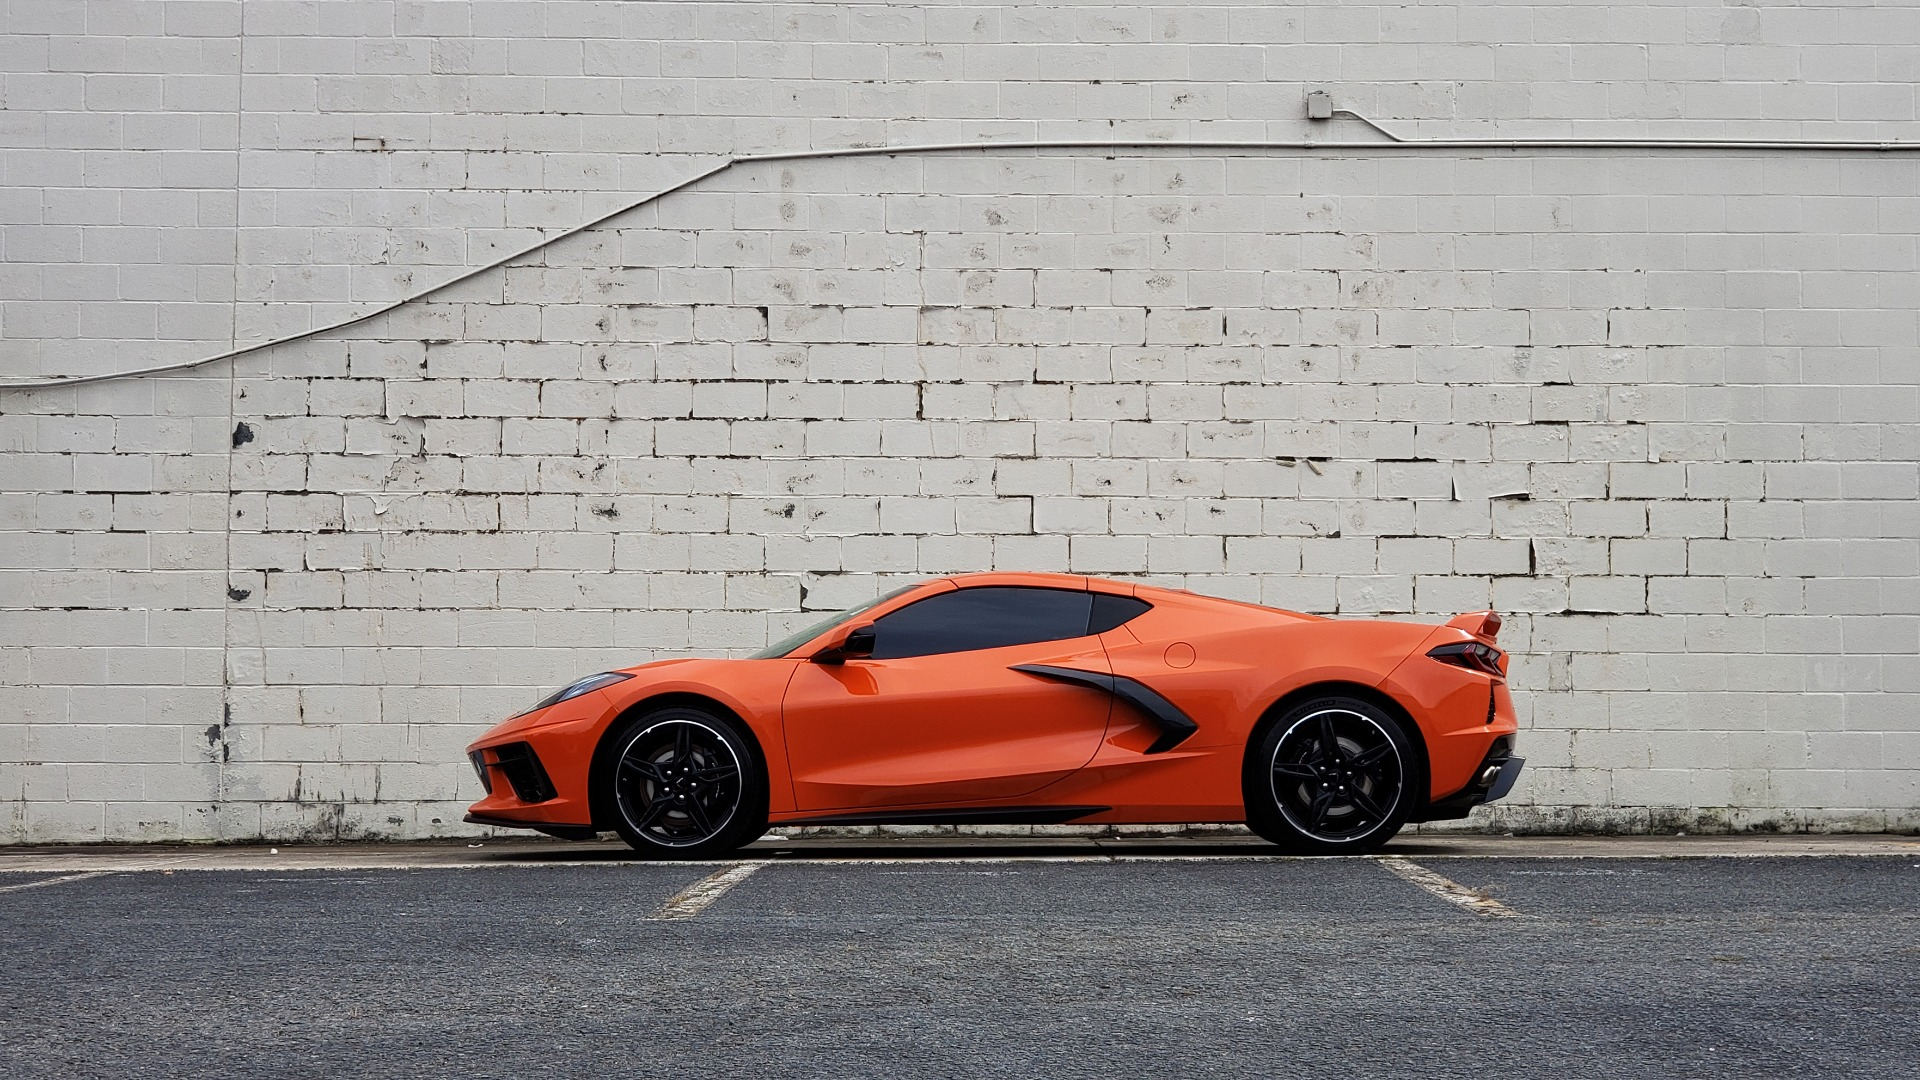 Used 2020 Chevrolet CORVETTE C8 STINGRAY 2LT / 6.2L V8 / 8-SPD AUTO / NAV / BOSE / REARVIEW / DATA RECOR for sale Sold at Formula Imports in Charlotte NC 28227 87